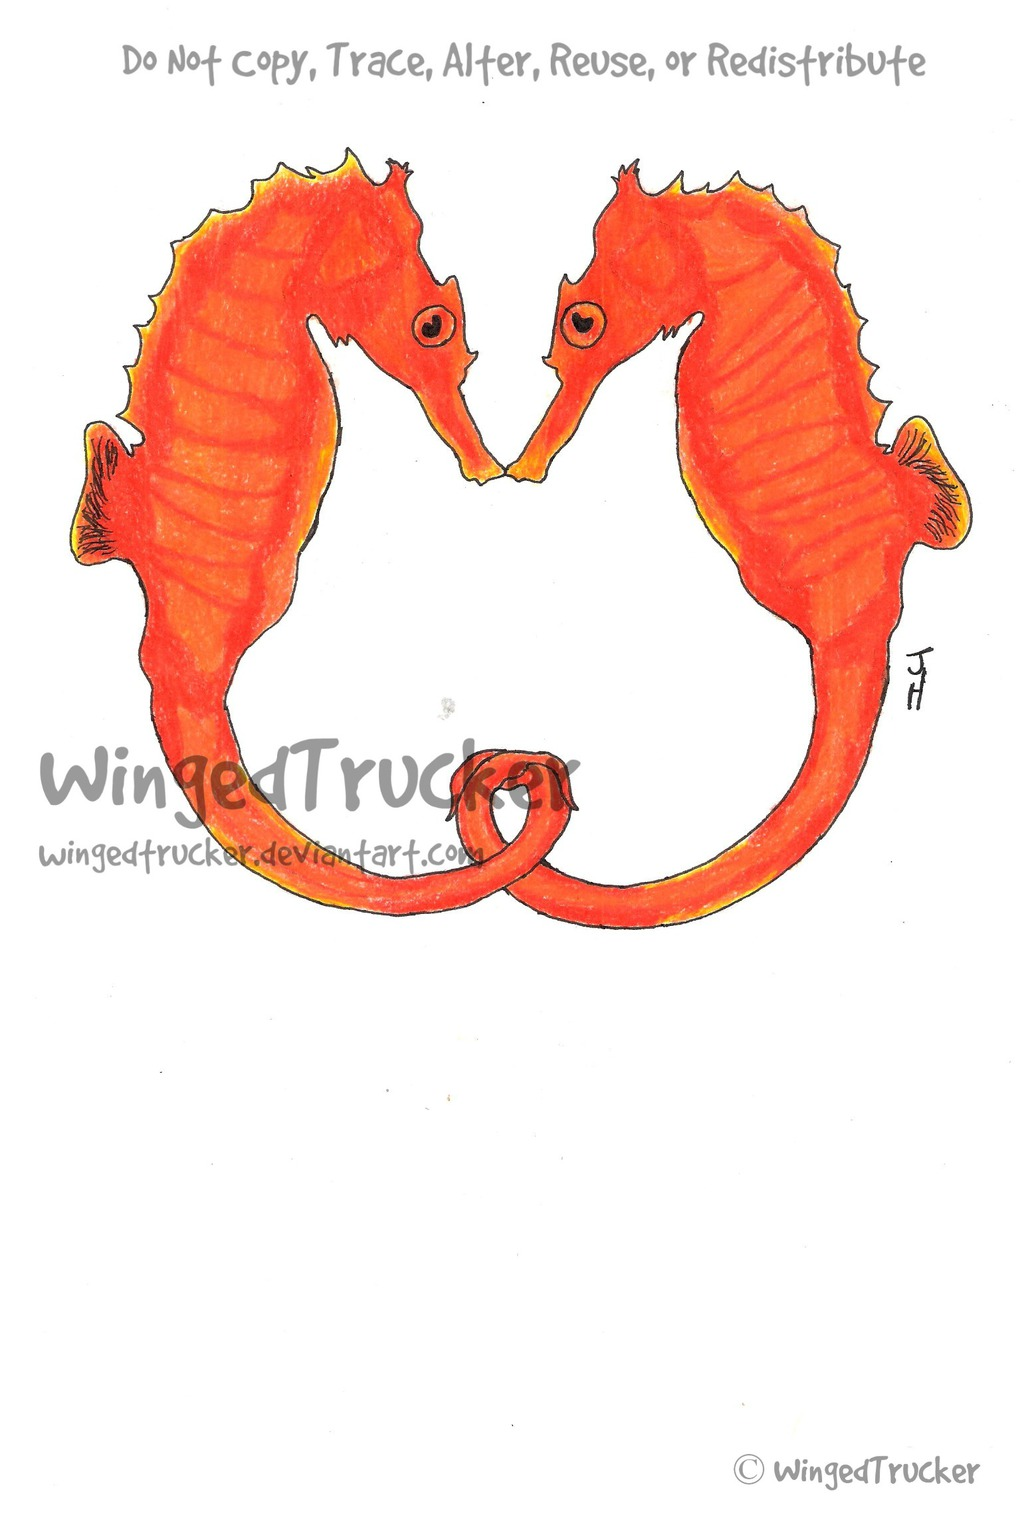 Most recent image: Seahorses Commission